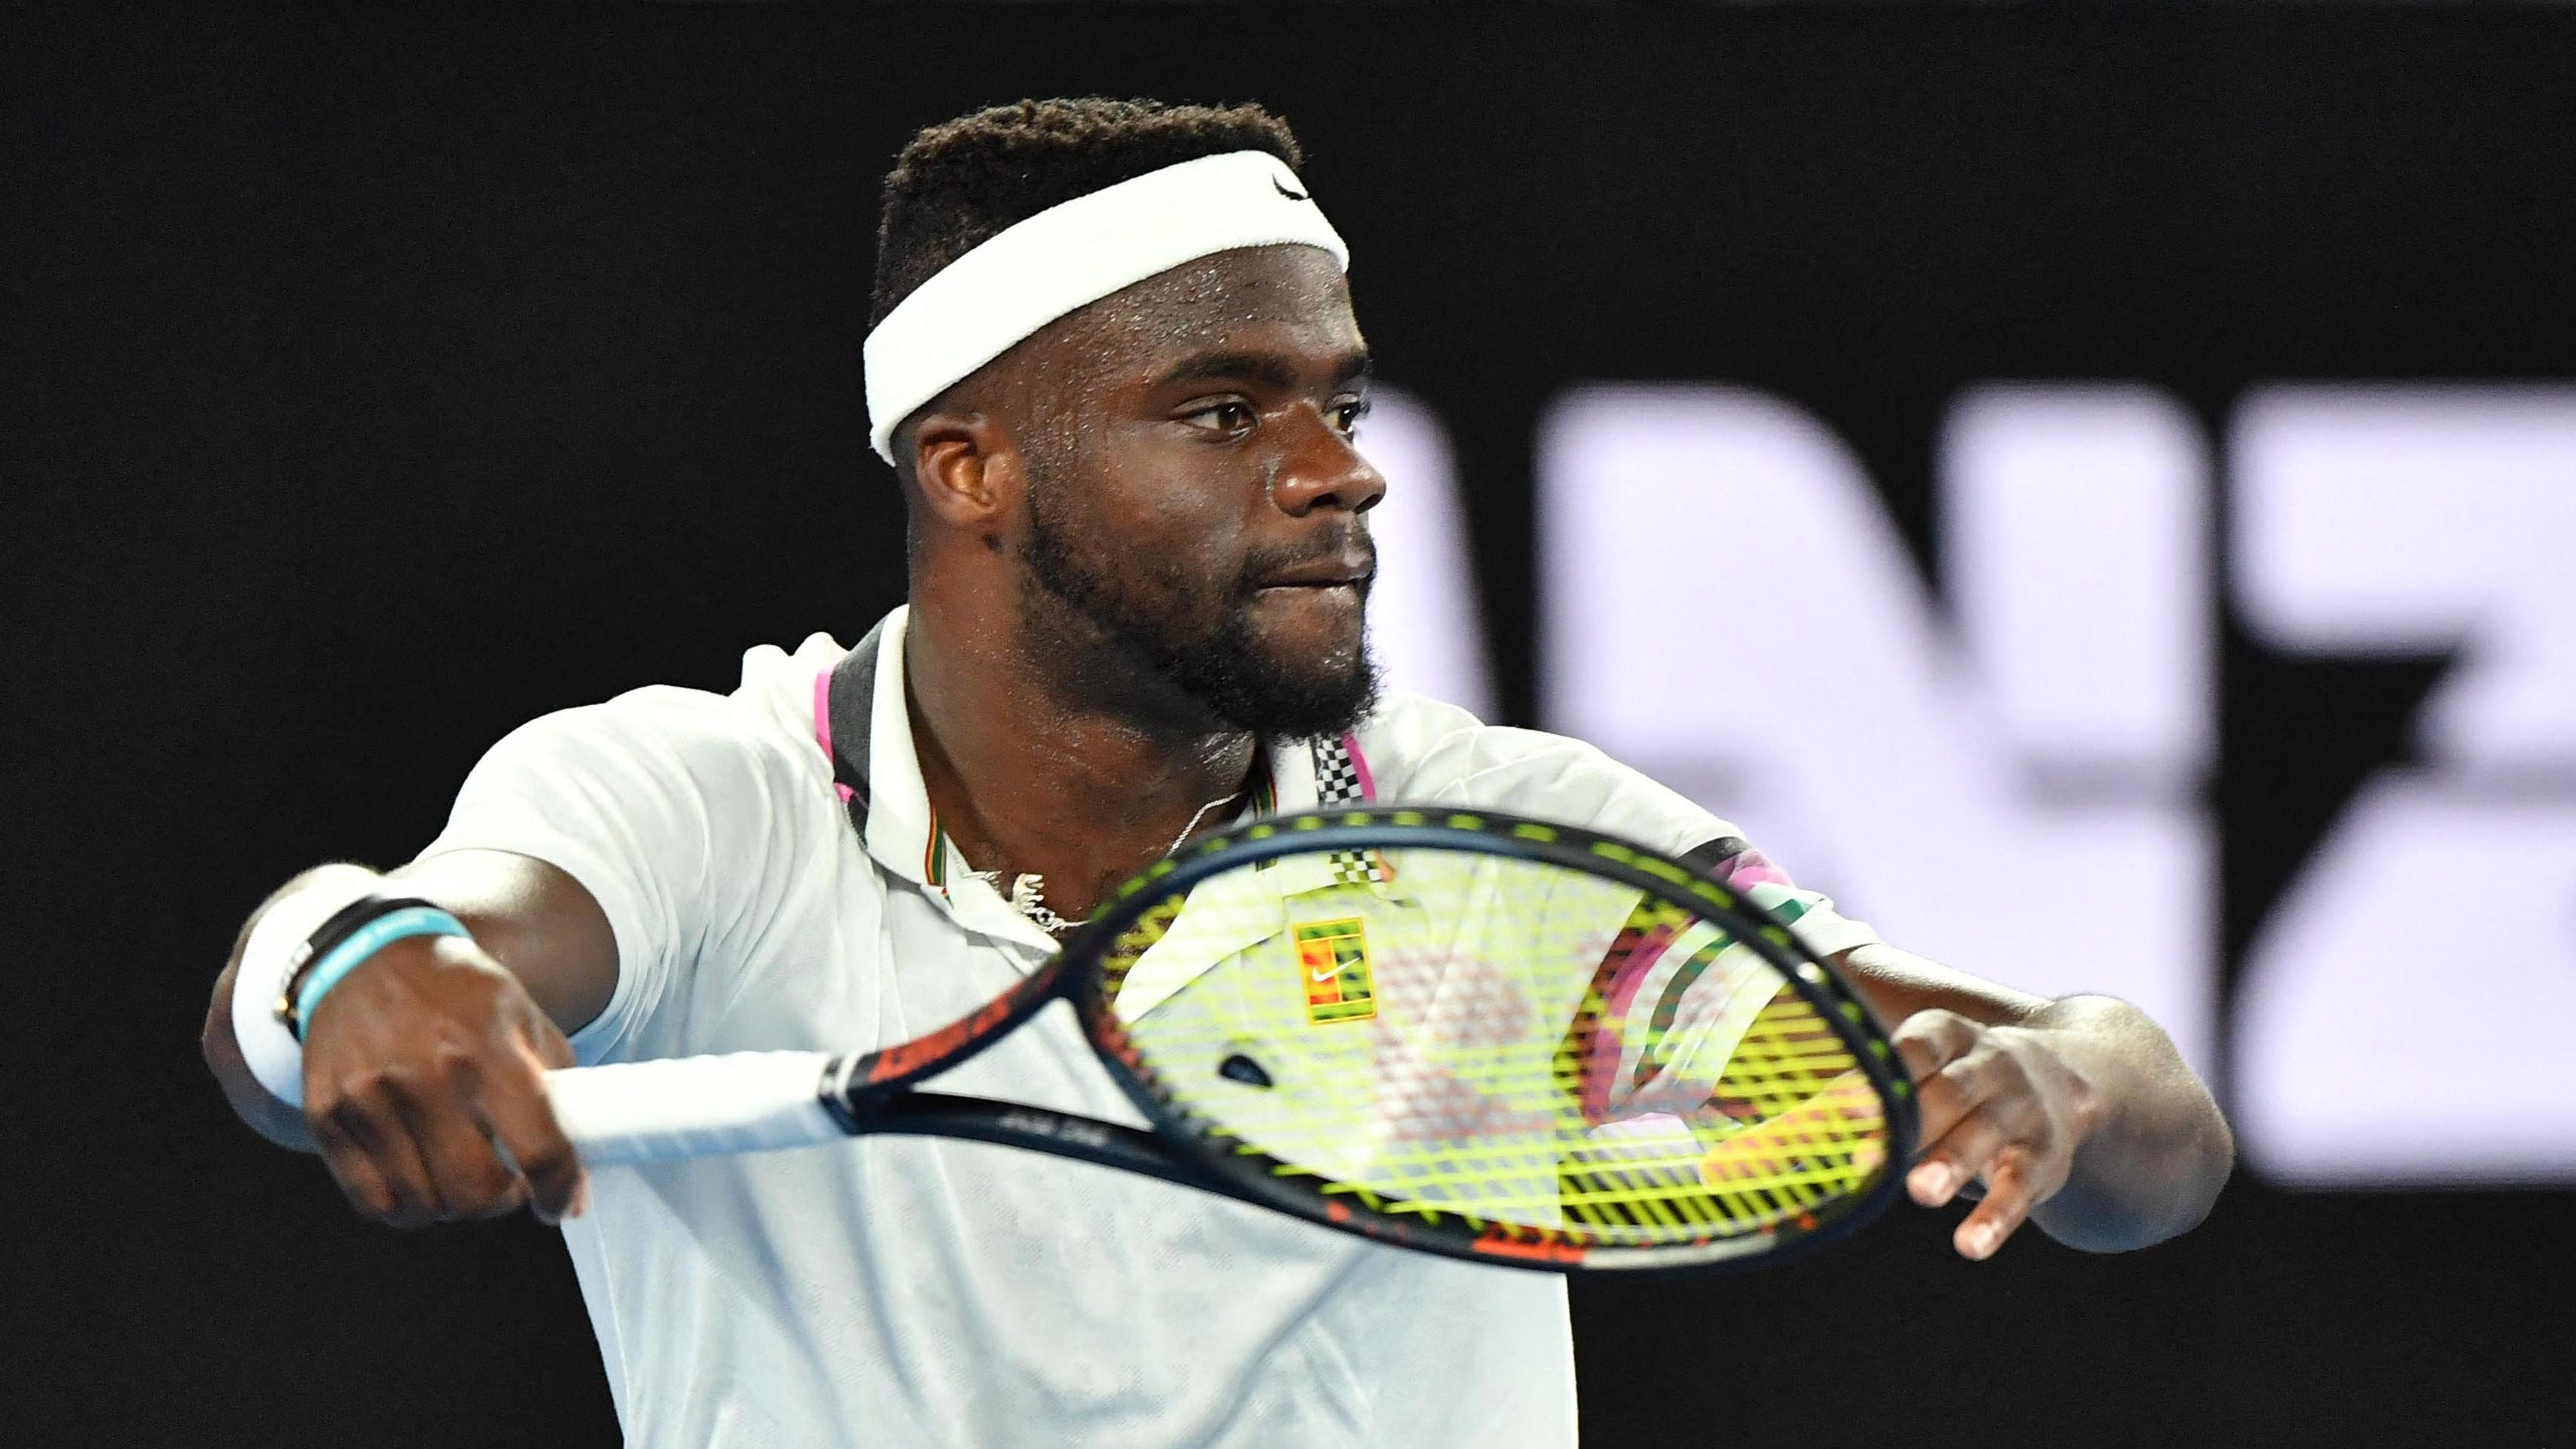 Frances Tiafoe made it to the quarterfinals of the Australian Open before losing to eventual finalist Rafael Nadal.